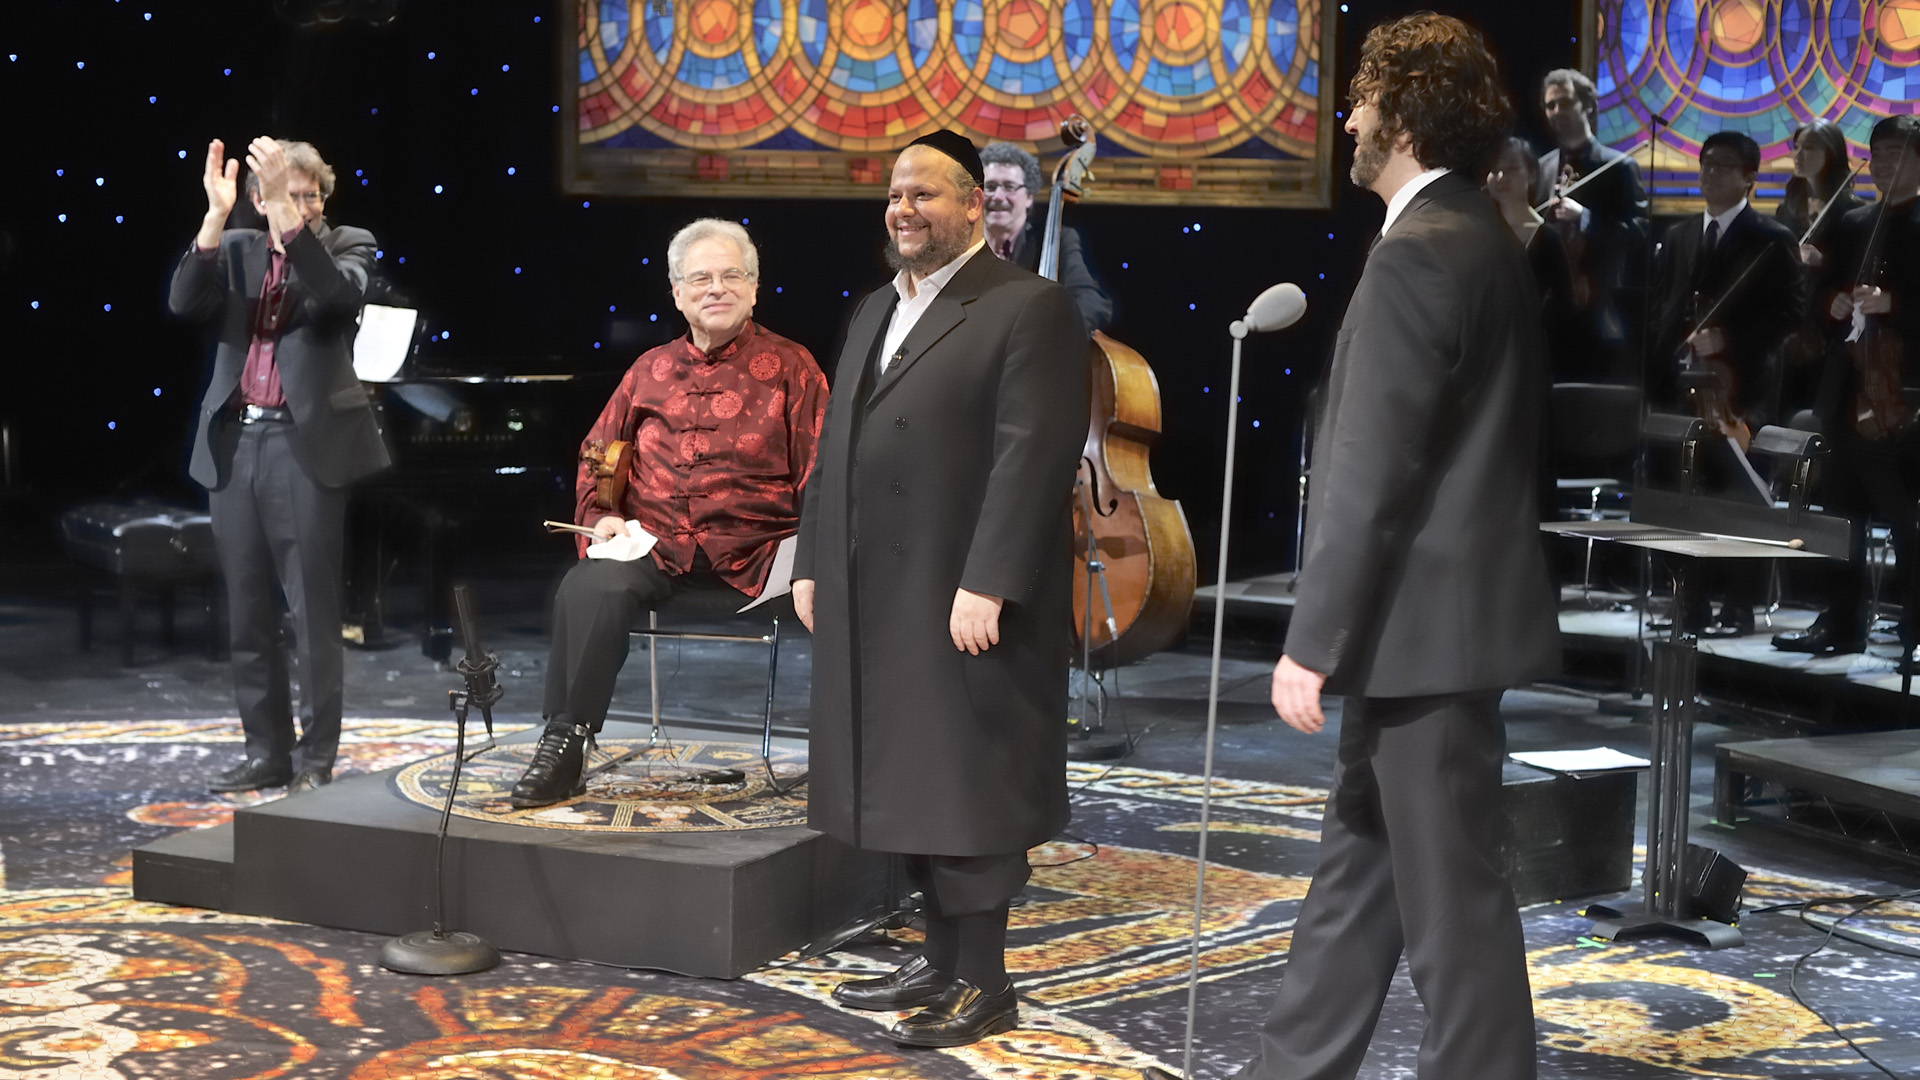 Great Performances: Rejoice! Itzhak Perlman and celebrated cantor Yitzchak Meir Helfgot join forces for a musical exploration of liturgical and traditional works.